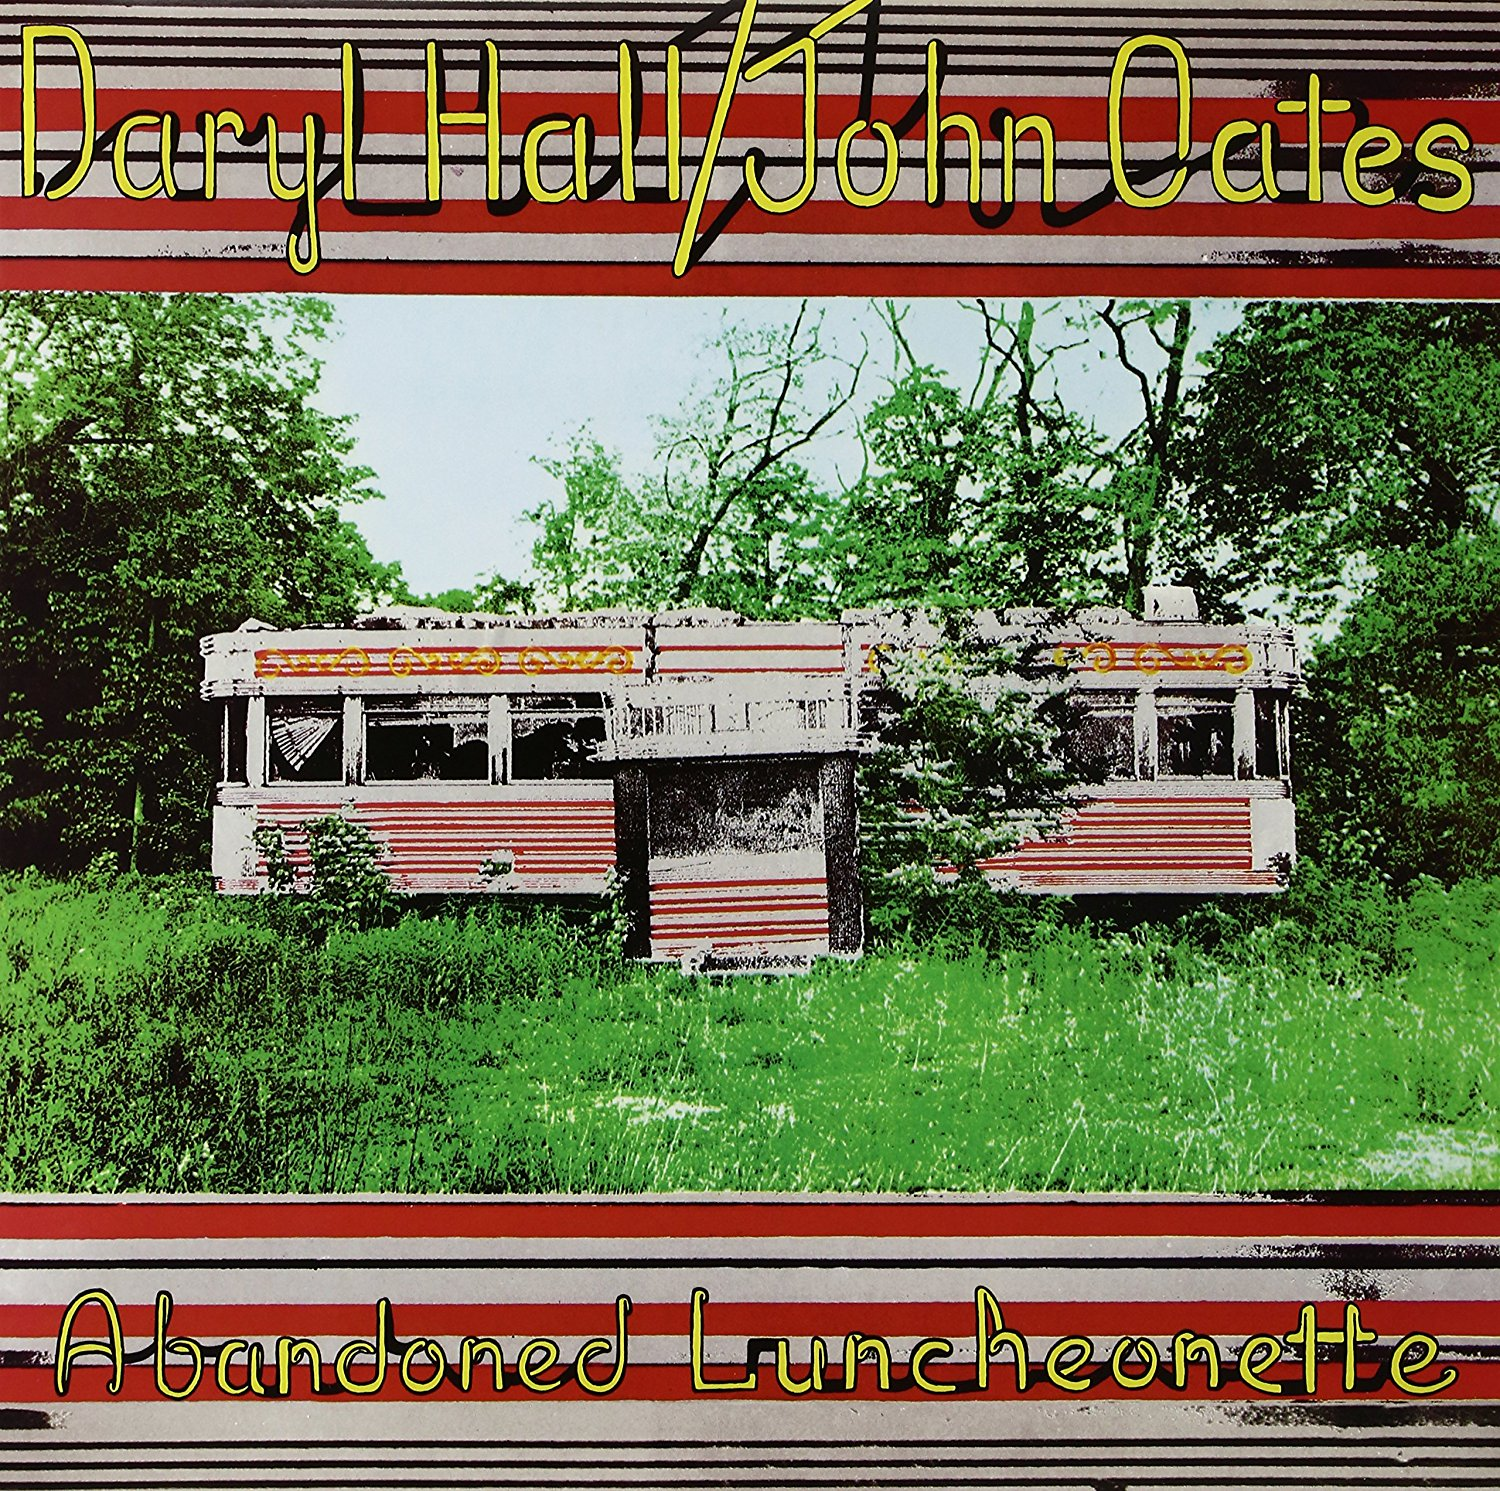 Abandoned Luncheonette  Daryl Hall & John Oates   LINK   Official Site   Facebook   Twitter   Instagram    LISTEN ON   Spotify   Apple Music